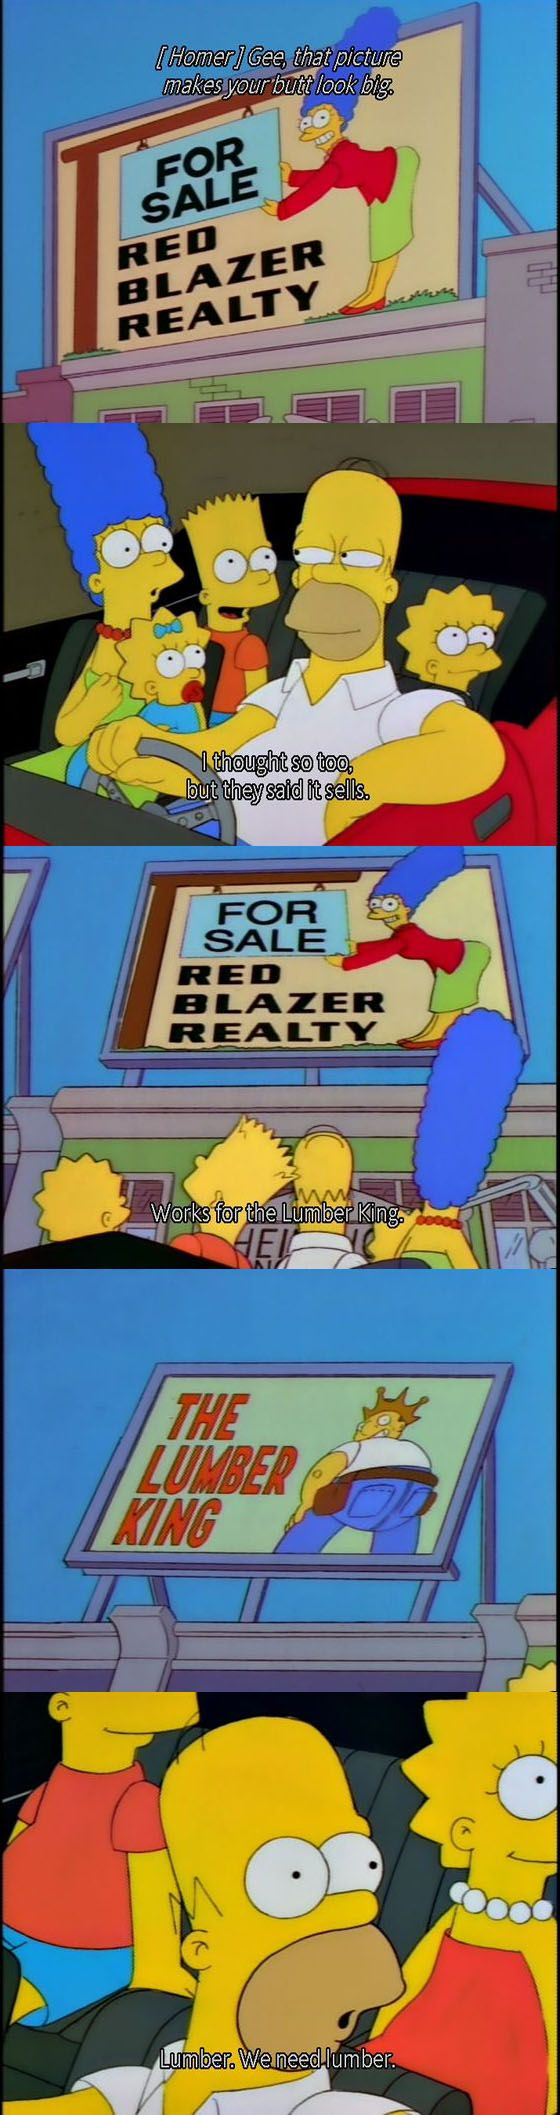 The Simpsons · Simpsons CartoonSimpsons QuotesFunny ...